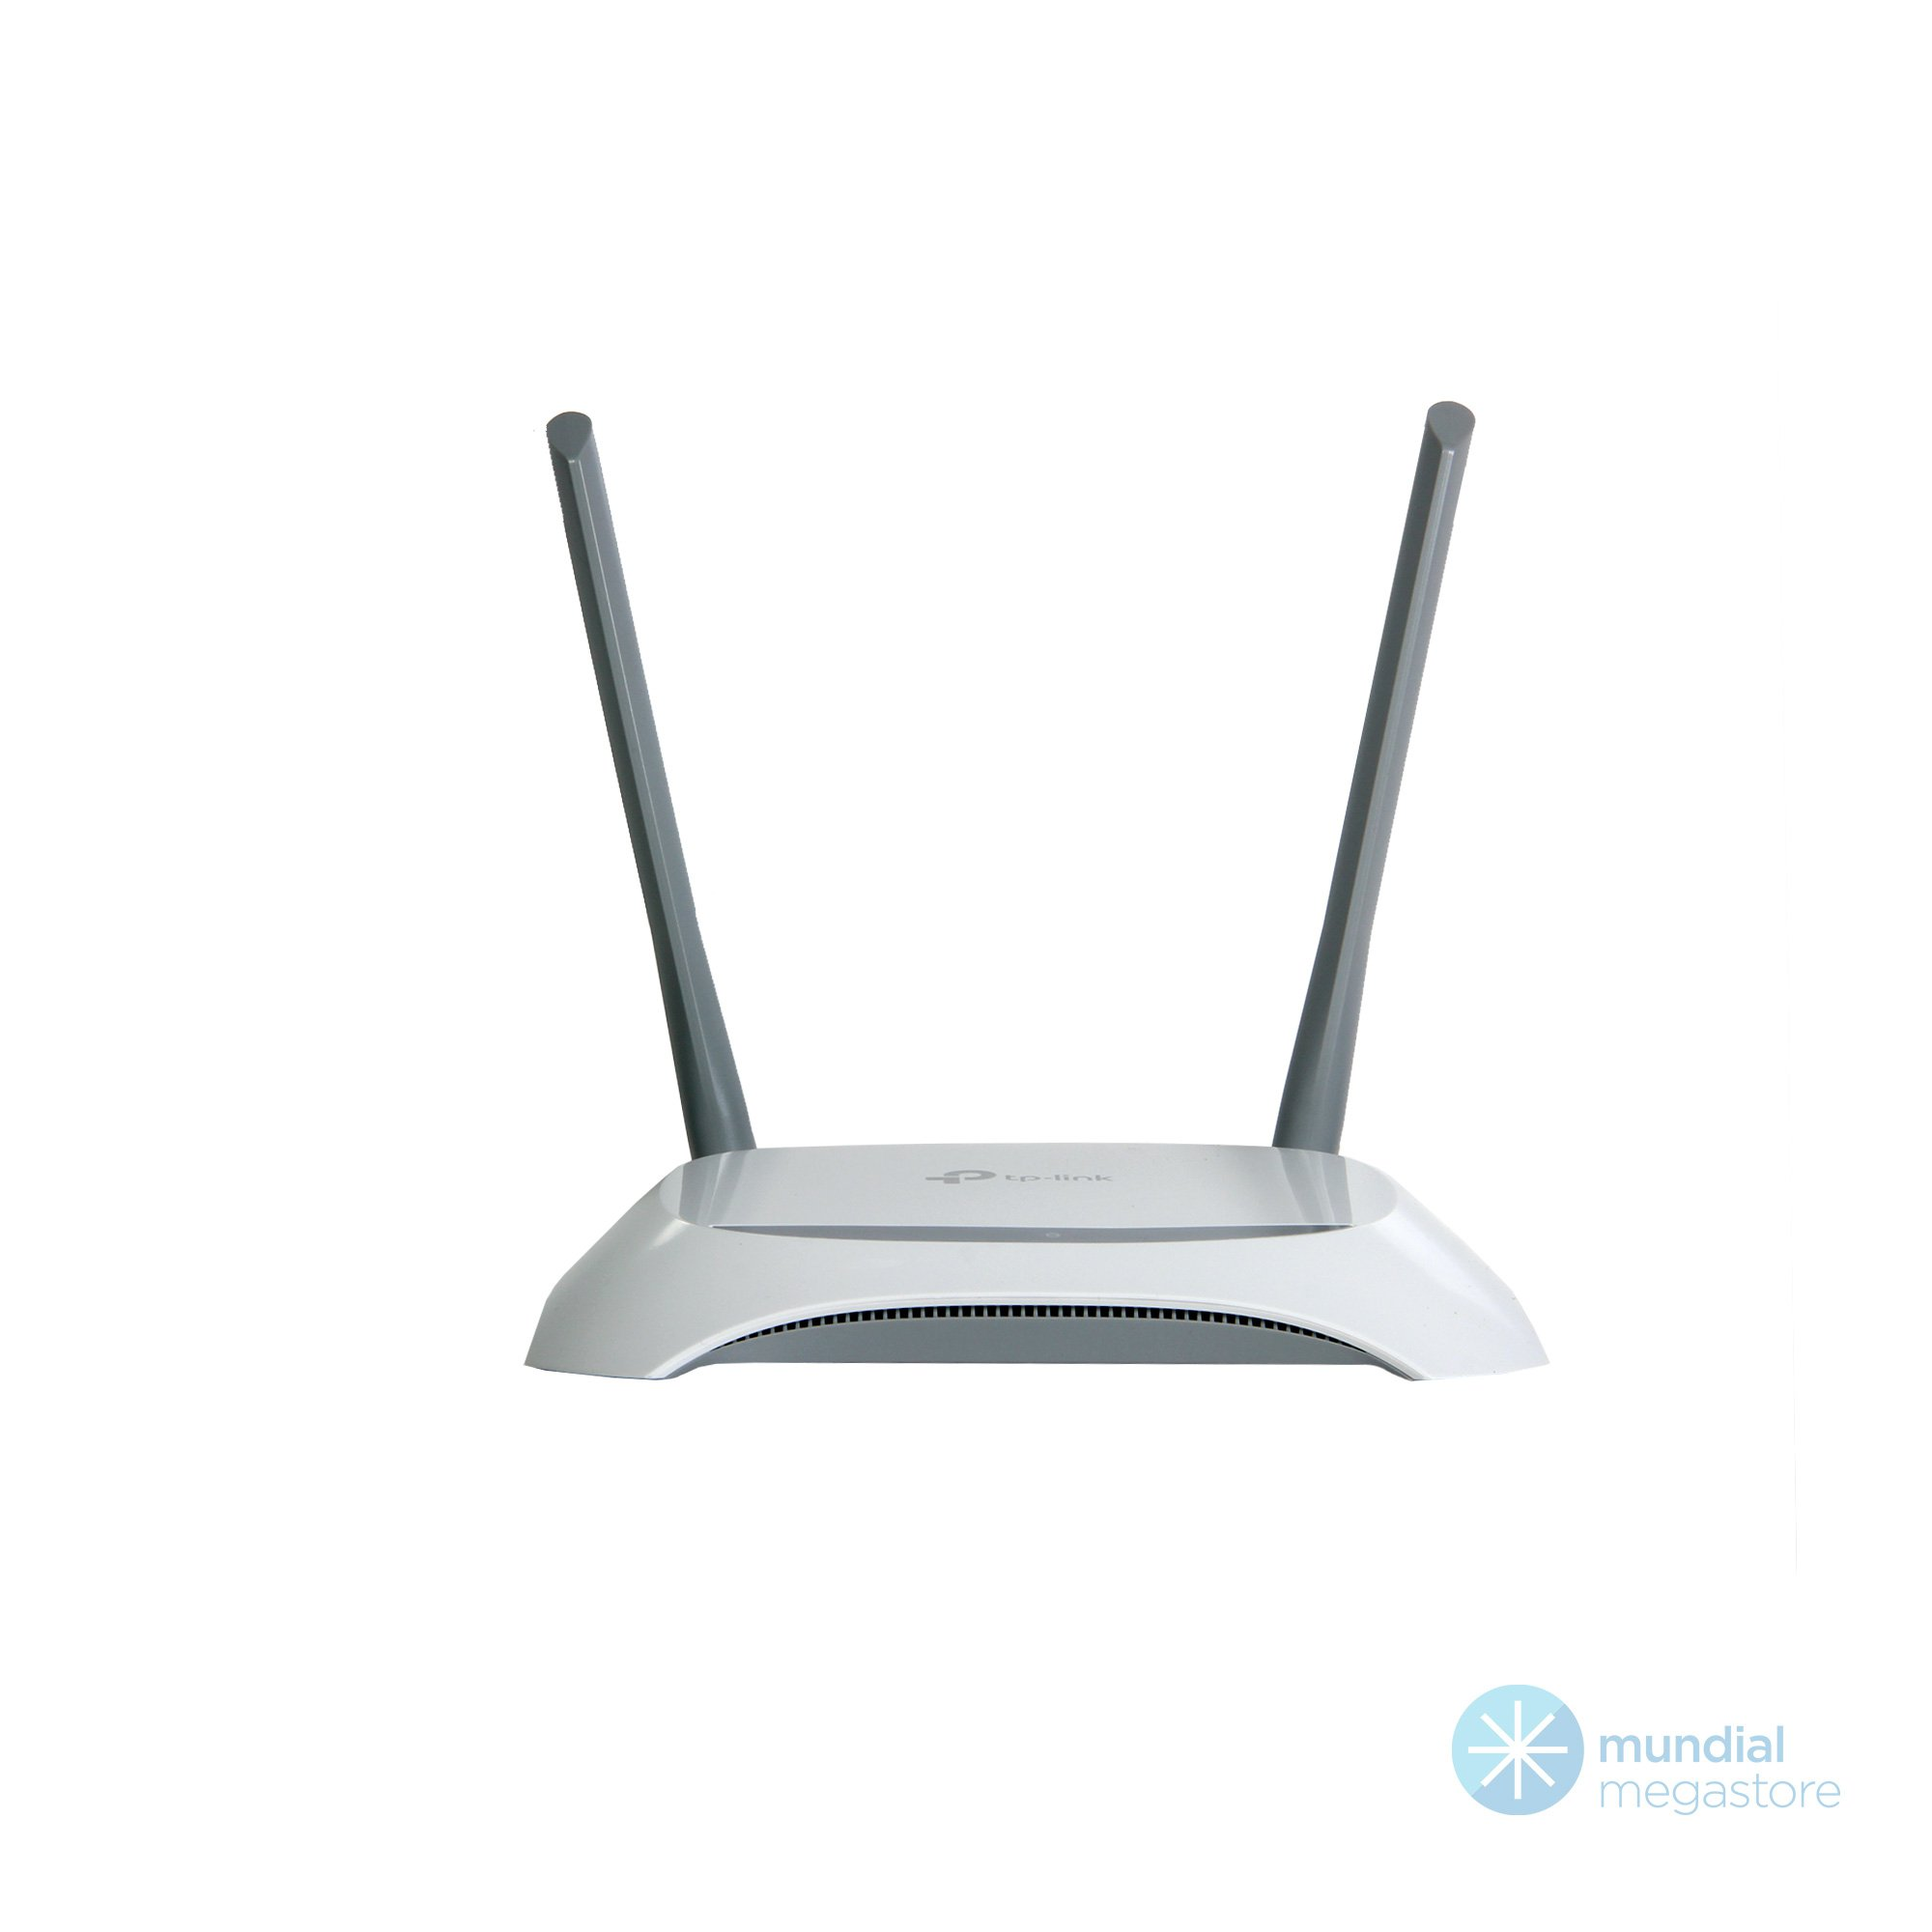 wireless roteador tp link wr849n 300mbps 2 antenas 45885 2000 195983